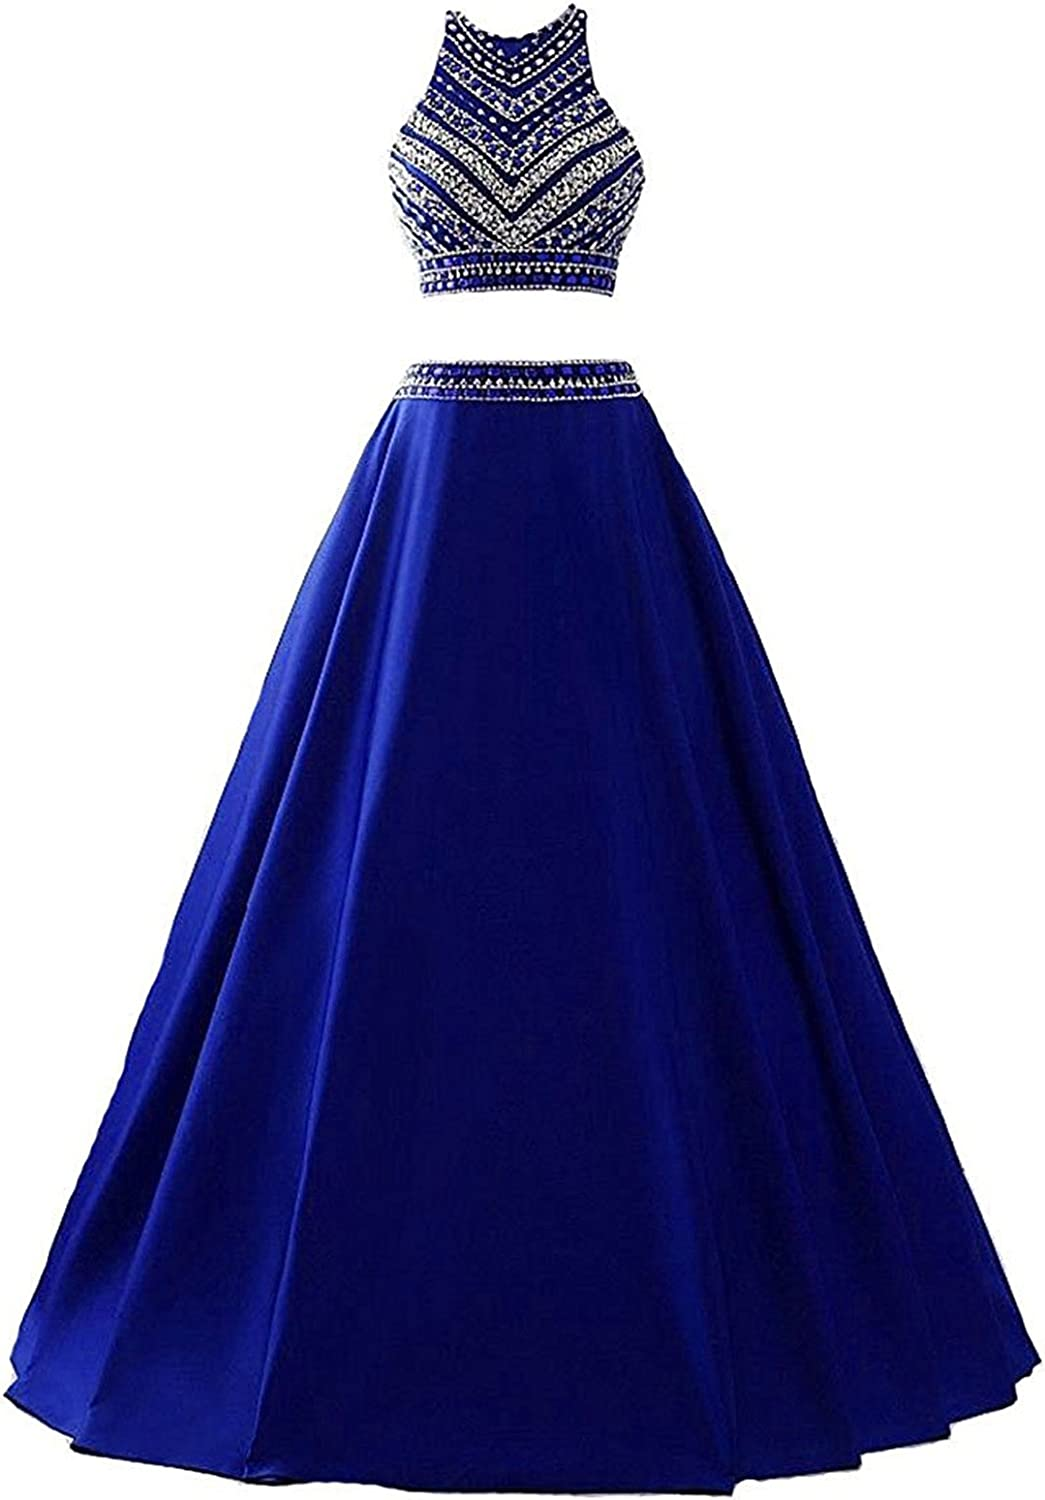 KAMA BRIDAL Women's Two Pieces Beaded Prom Dresses Long Satin Sequined Evening Gowns